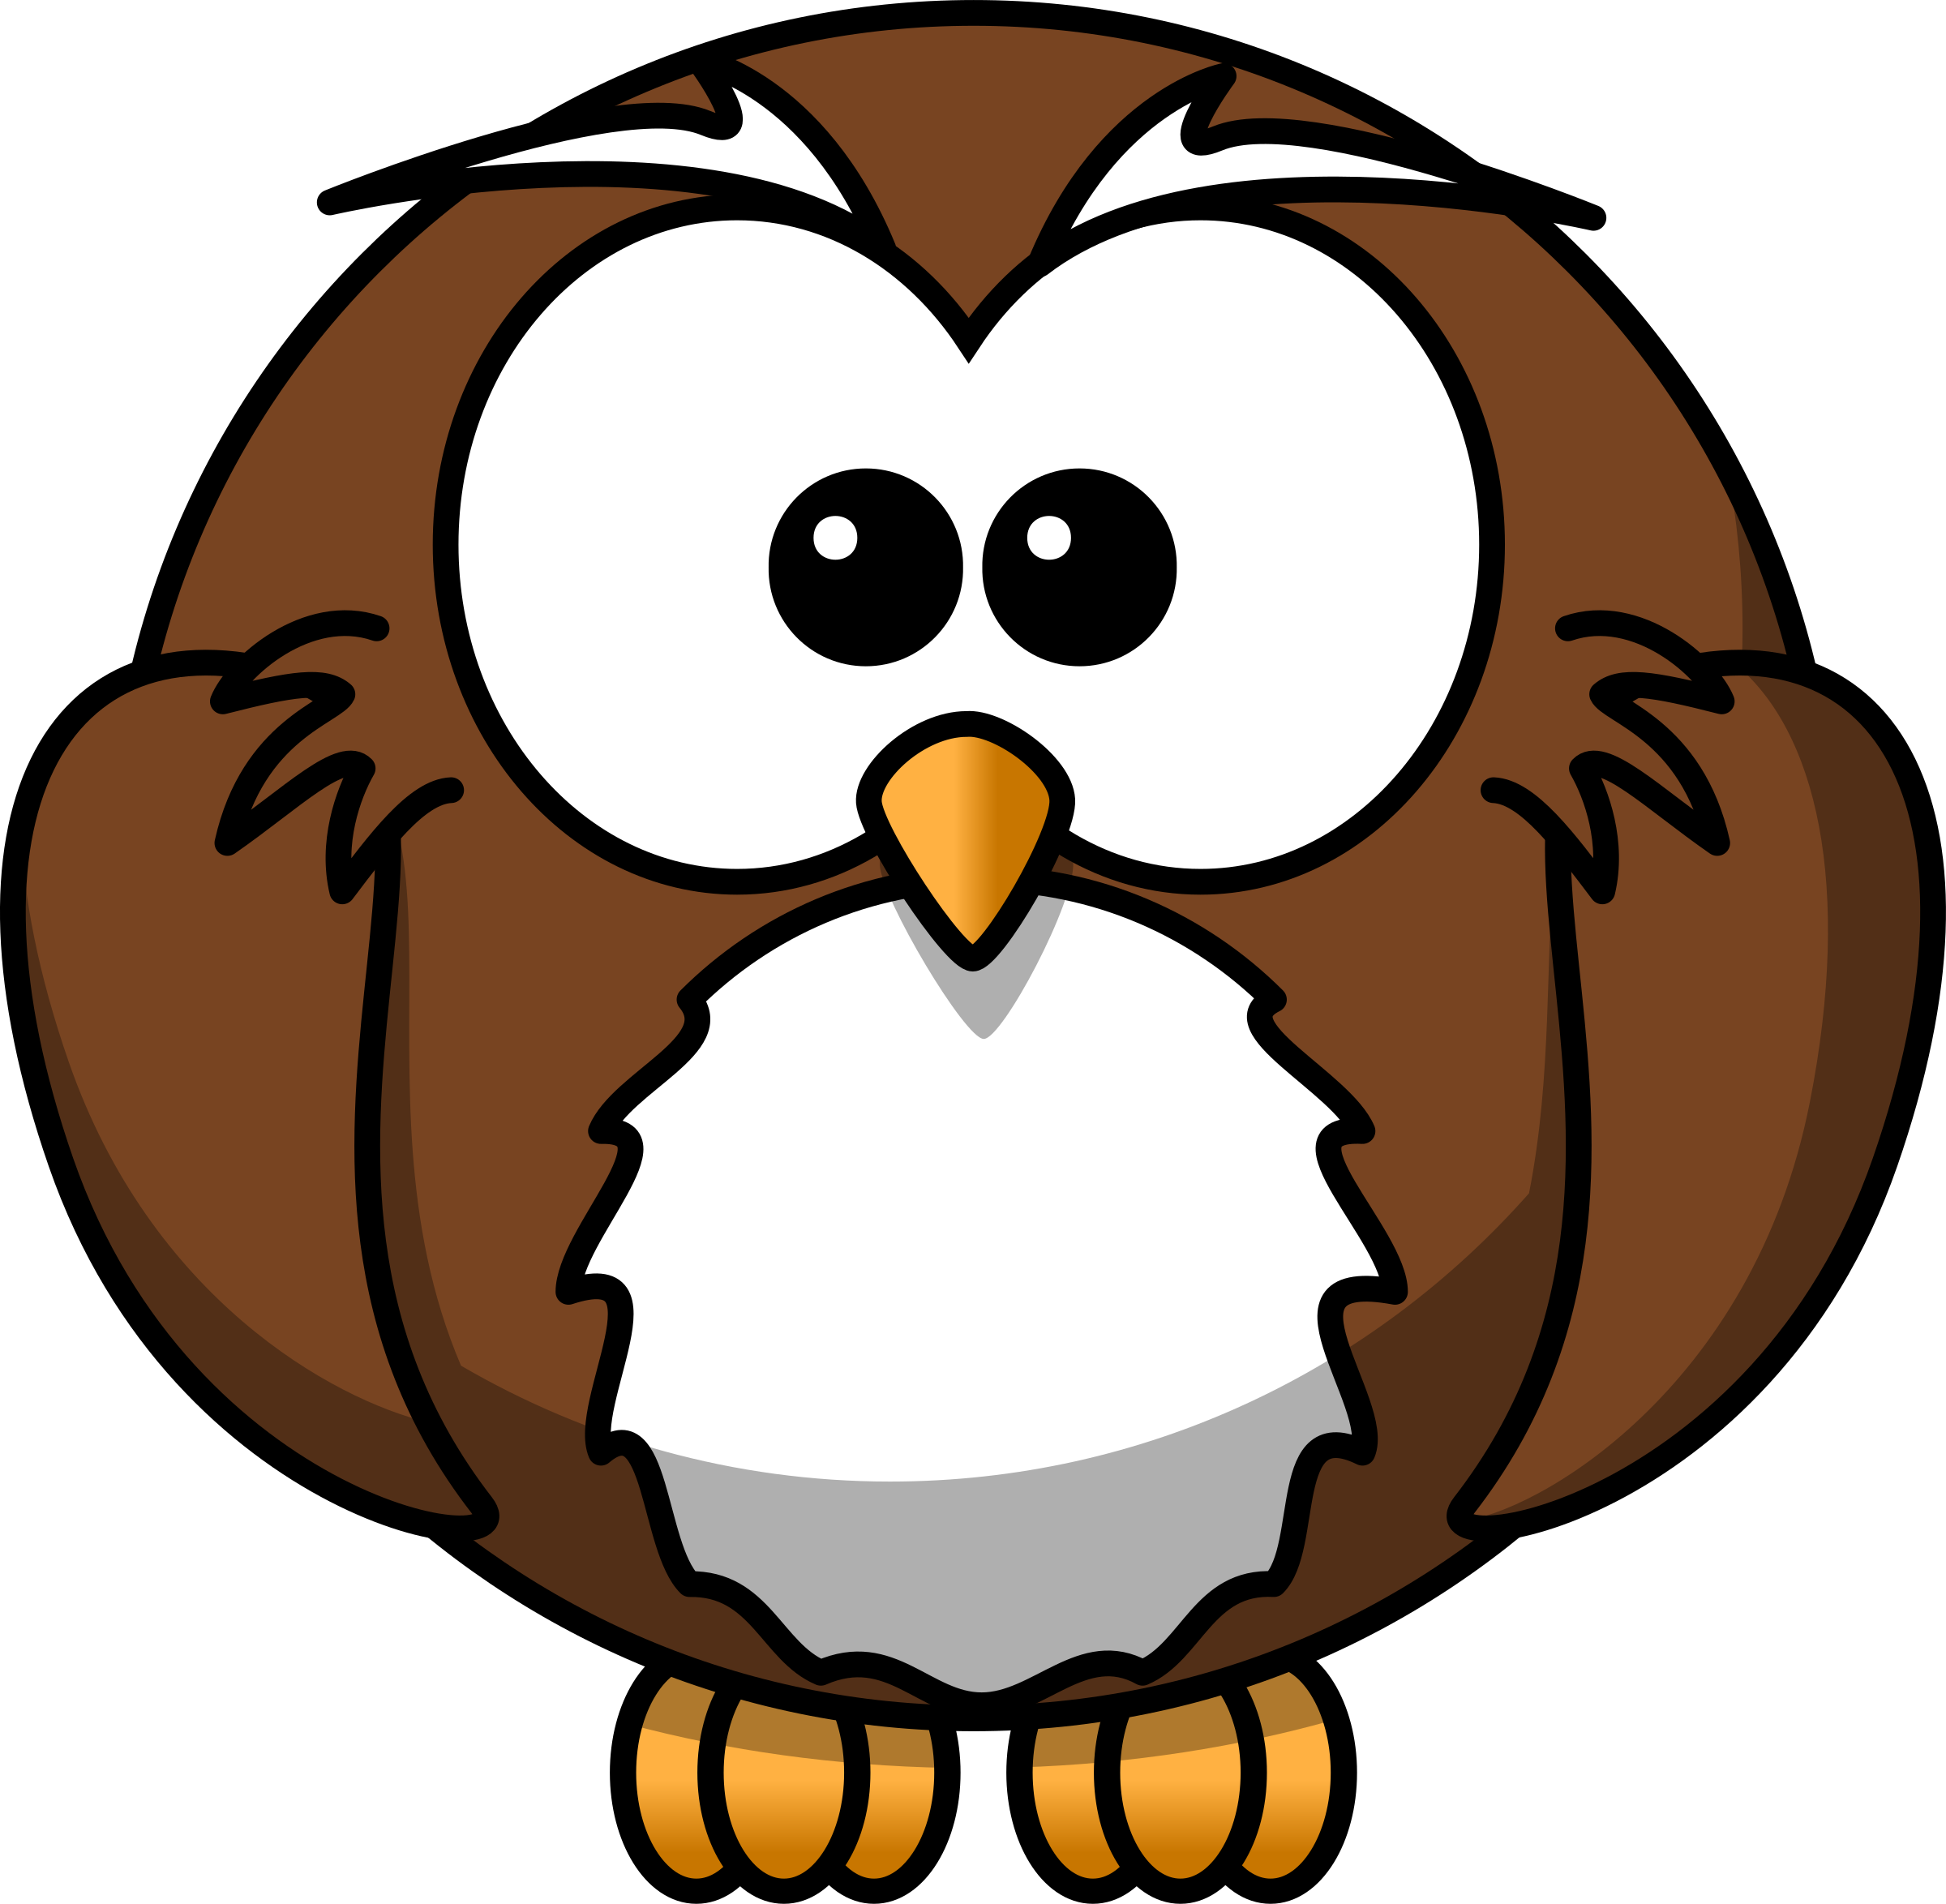 Download Owl Cartoon Pic Stock Photos Royalty #4065 - Unknown ... image transparent download